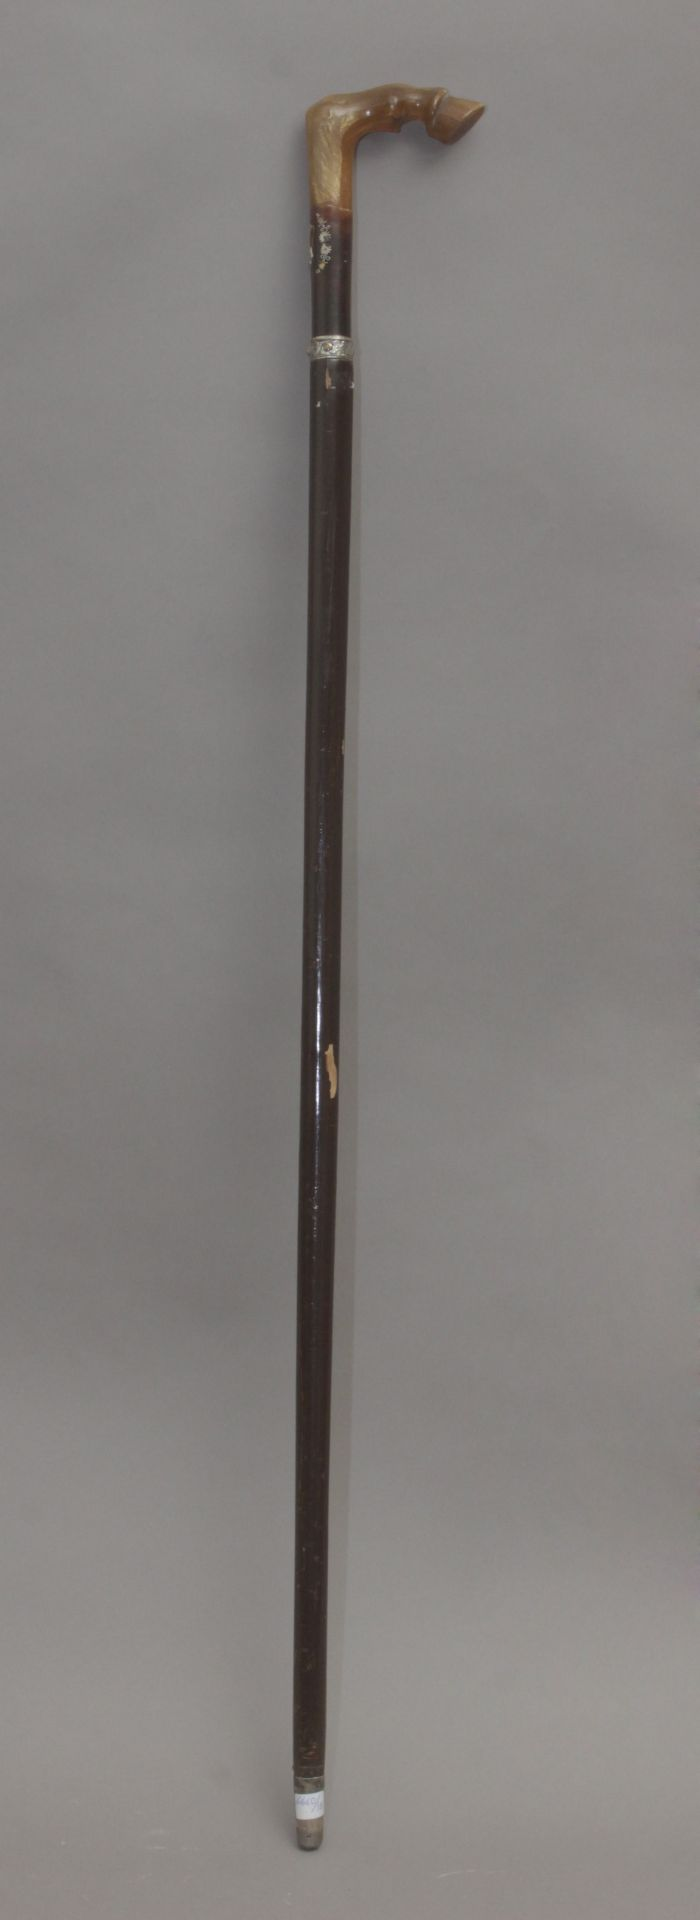 A 19th century European sword stick - Bild 2 aus 4